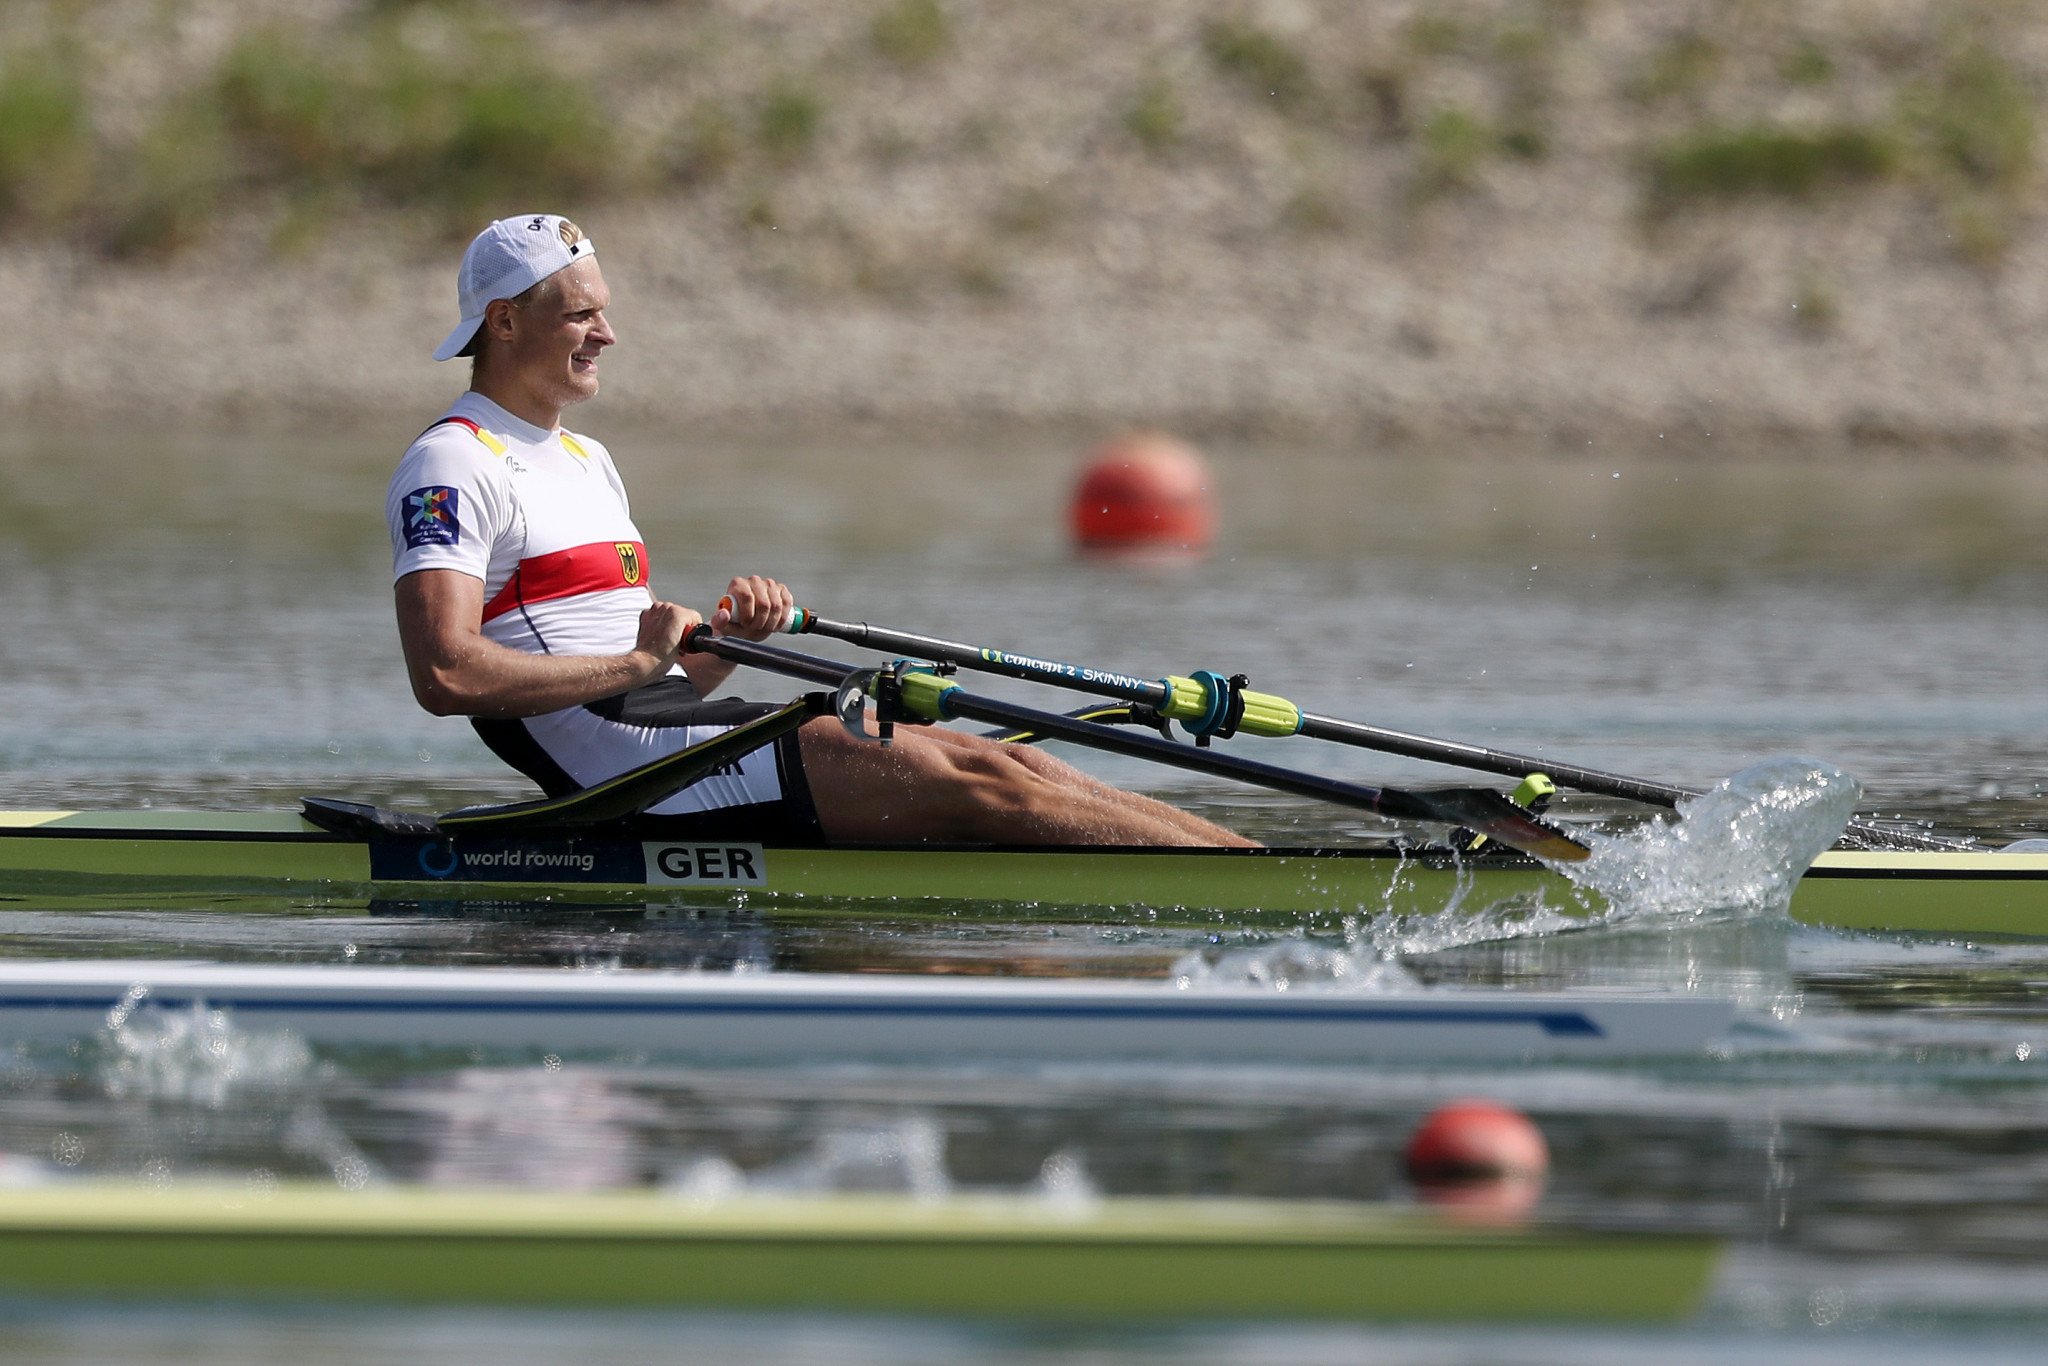 Defending champion Zeidler advances through repechage at European Rowing Championships